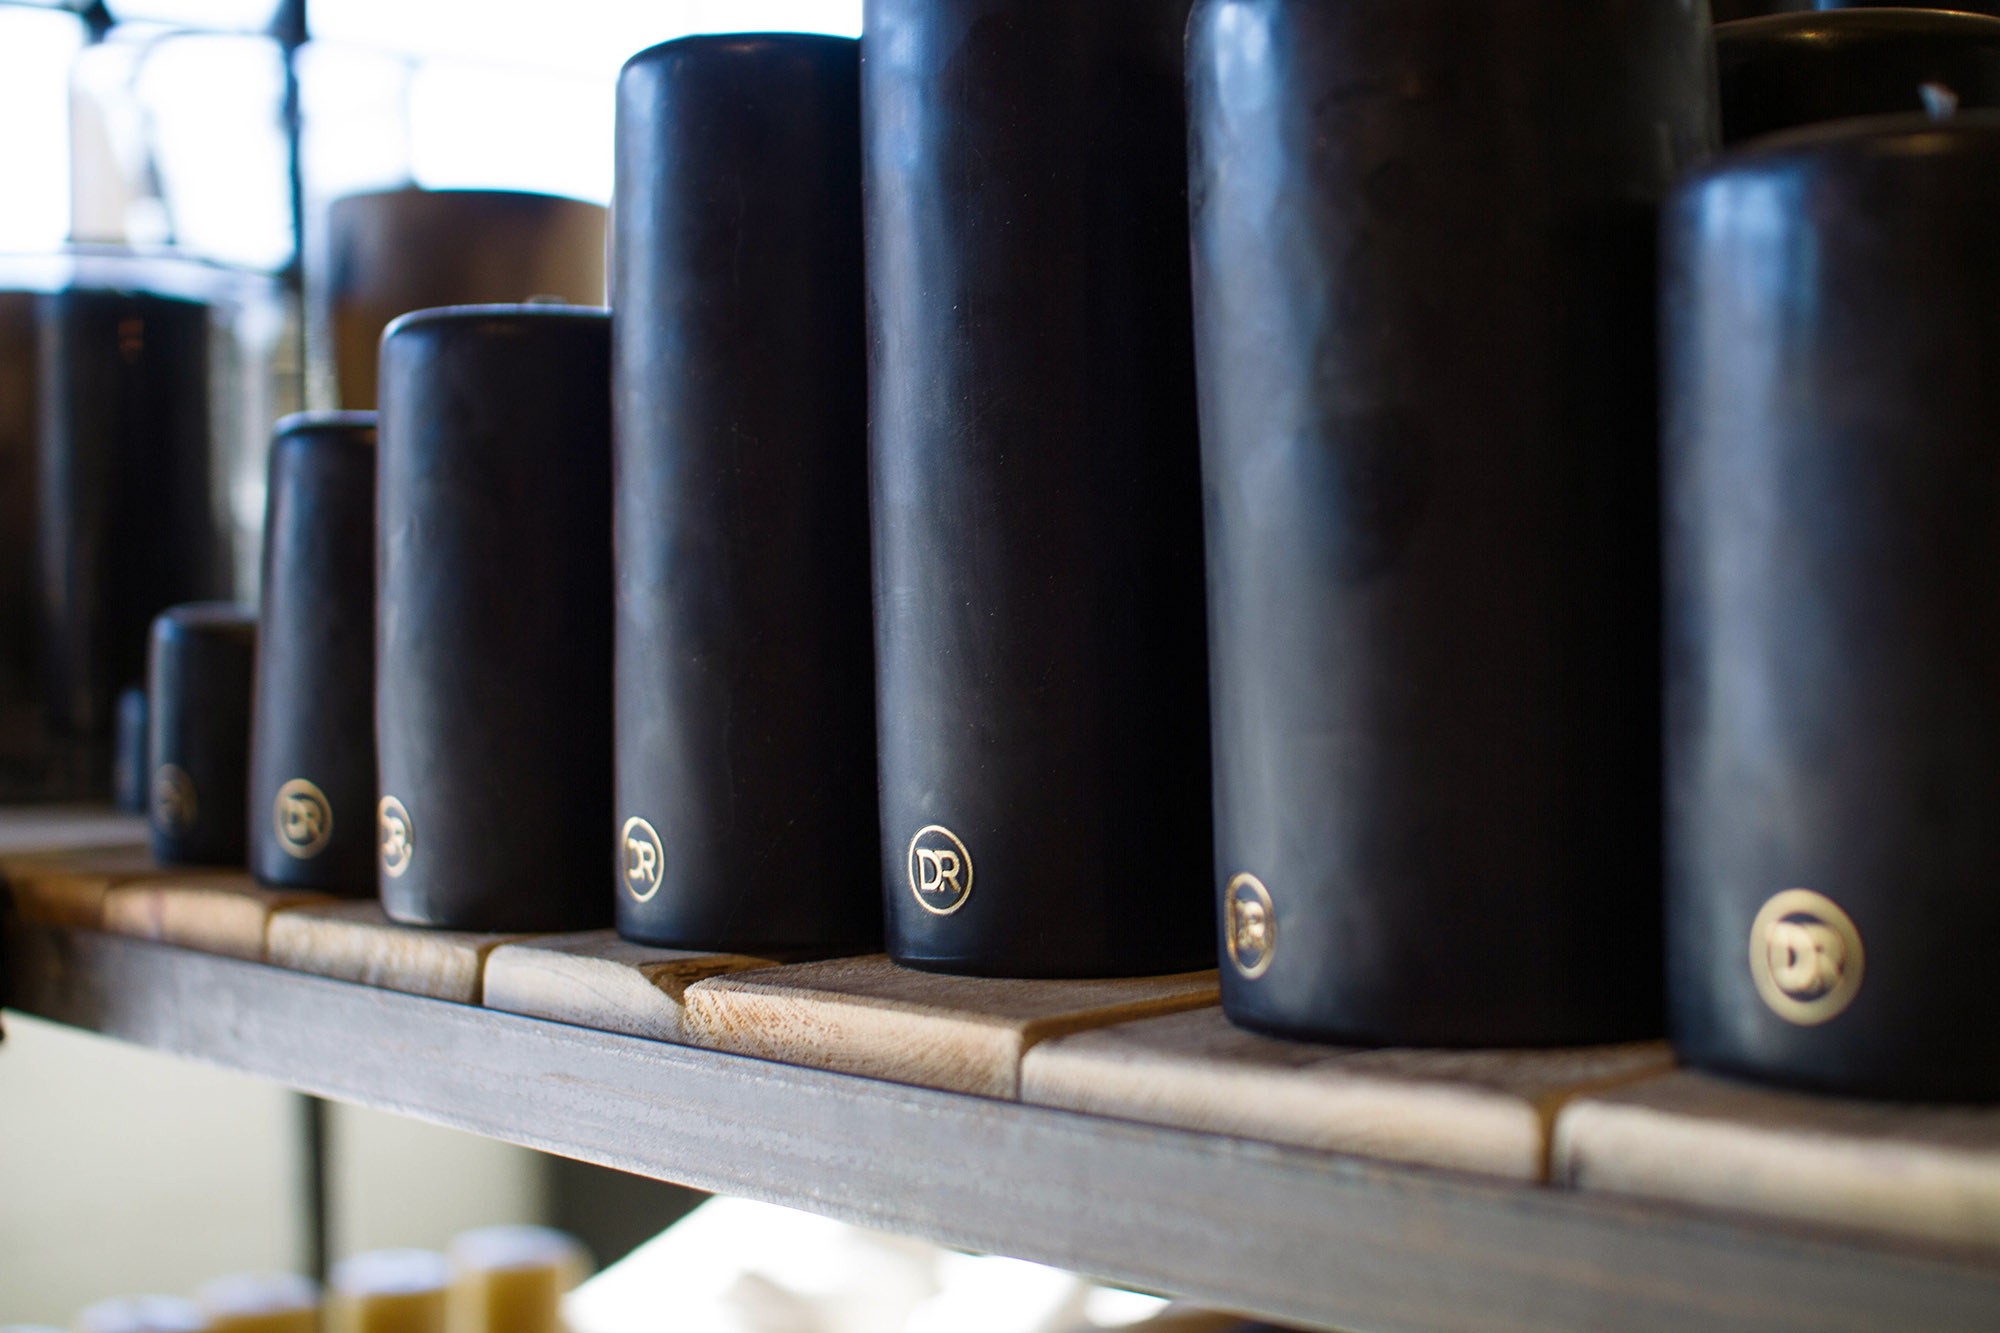 Black pillar candles with custom Dixon Rye DR circle icon stamped into the wax in gold on the side